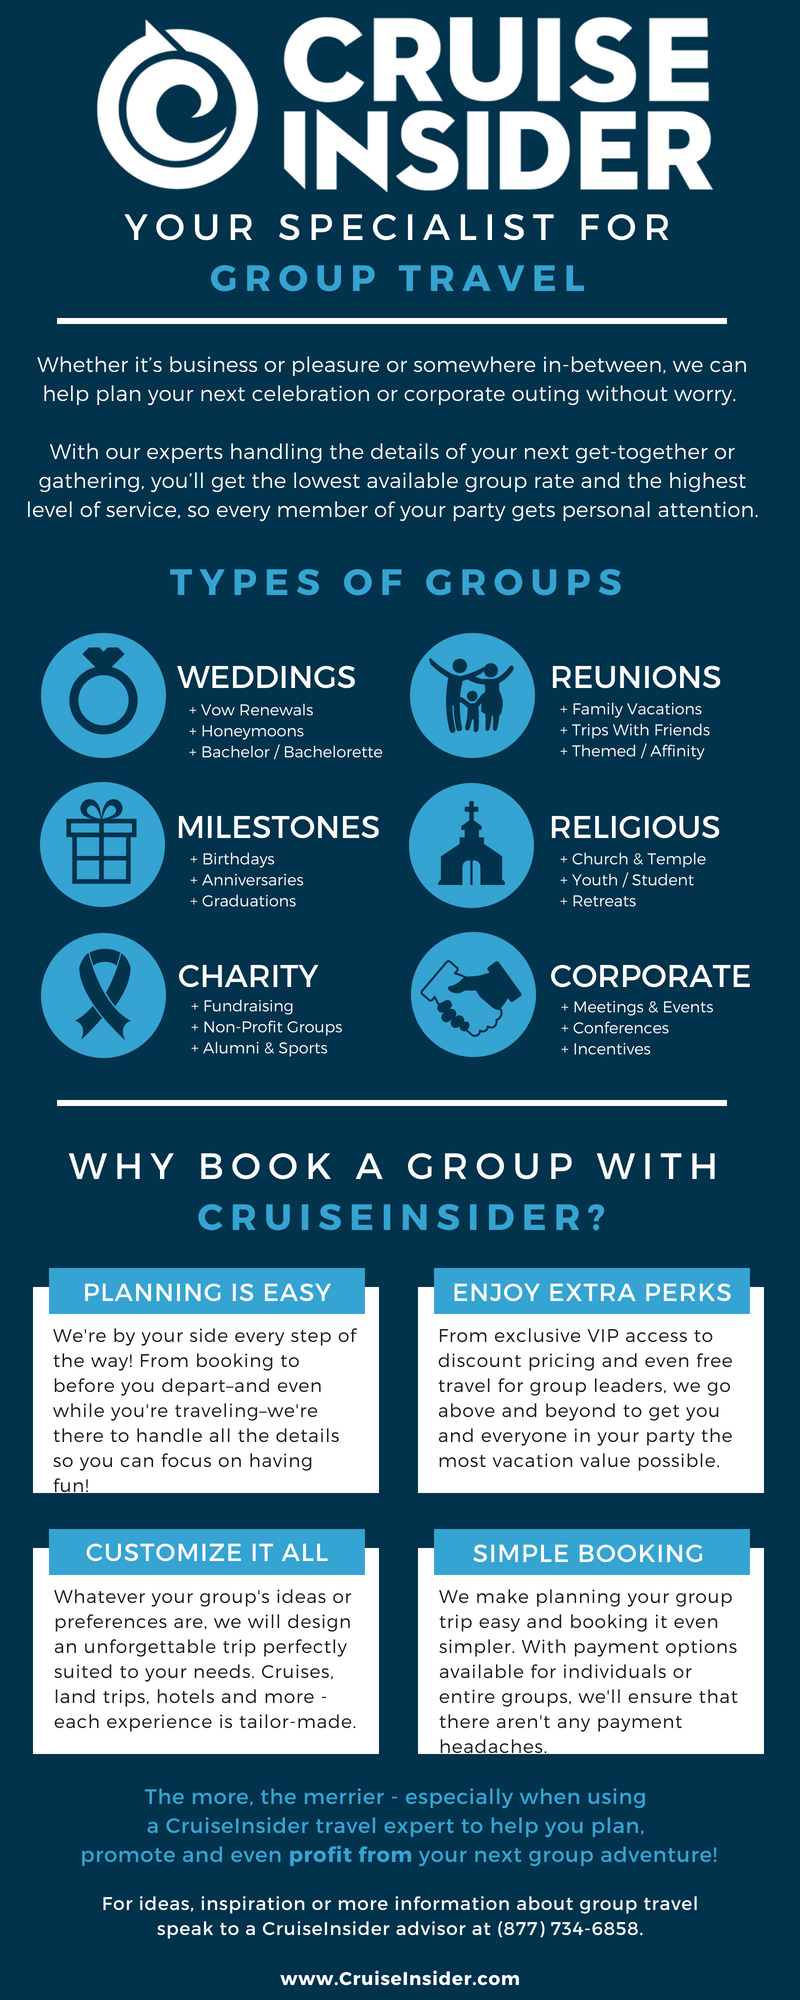 CruiseInsider flyer for why we're the best to plan your group travel.